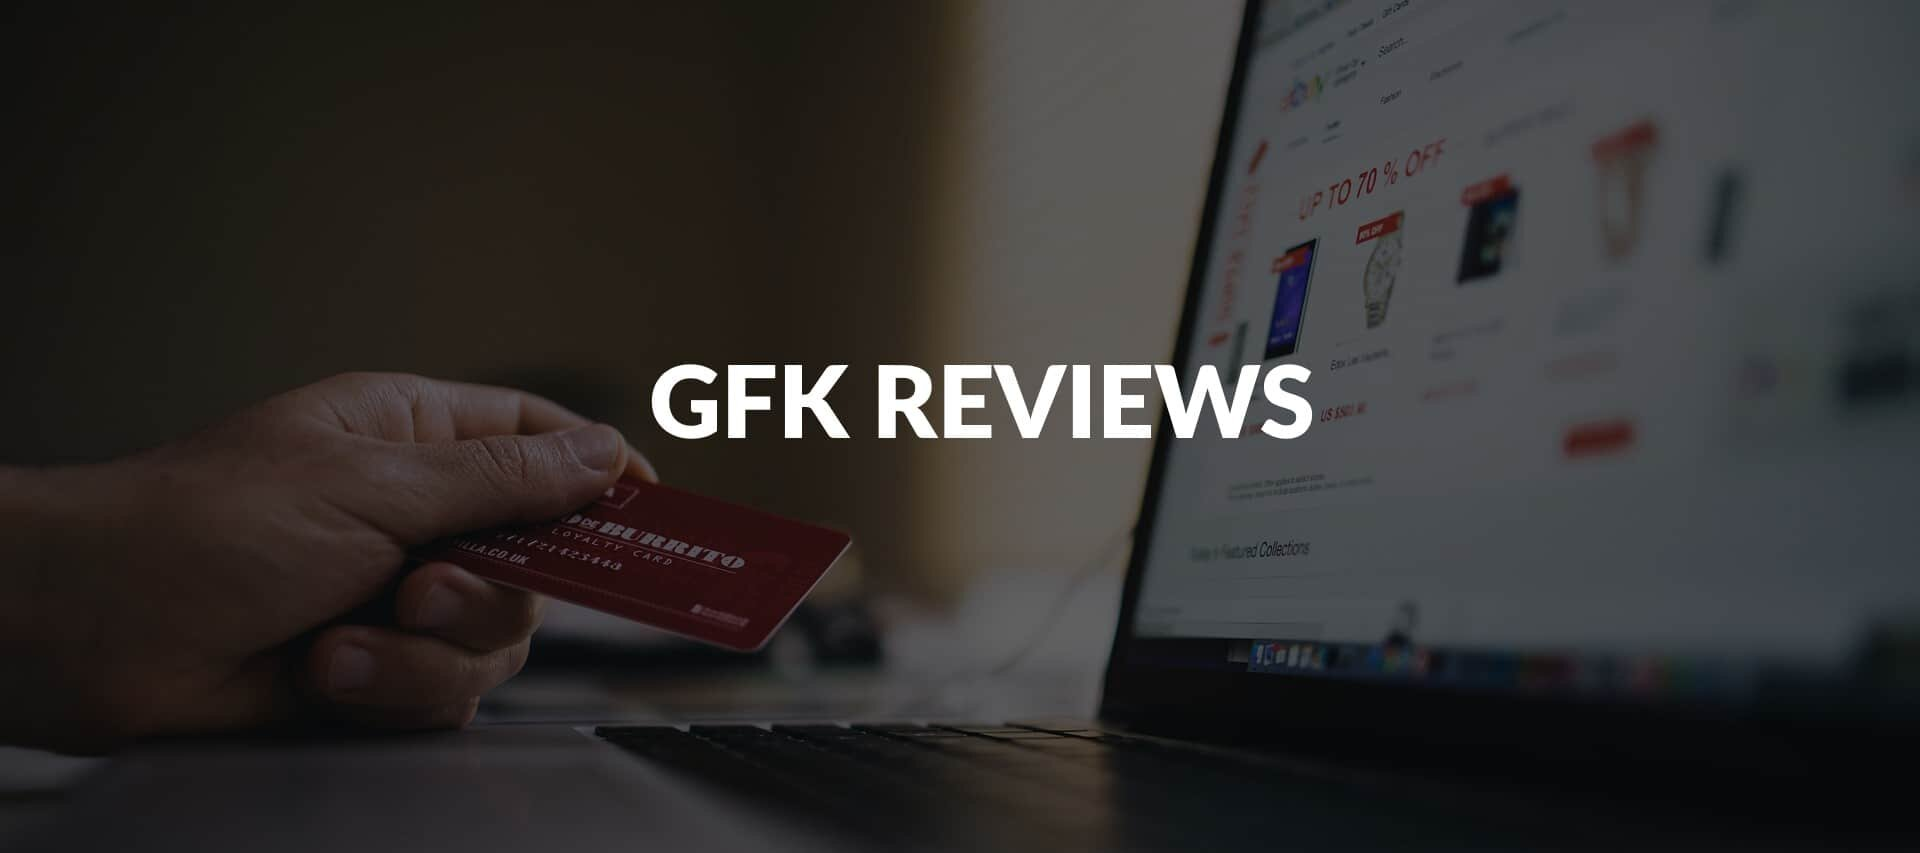 GFK Reviews